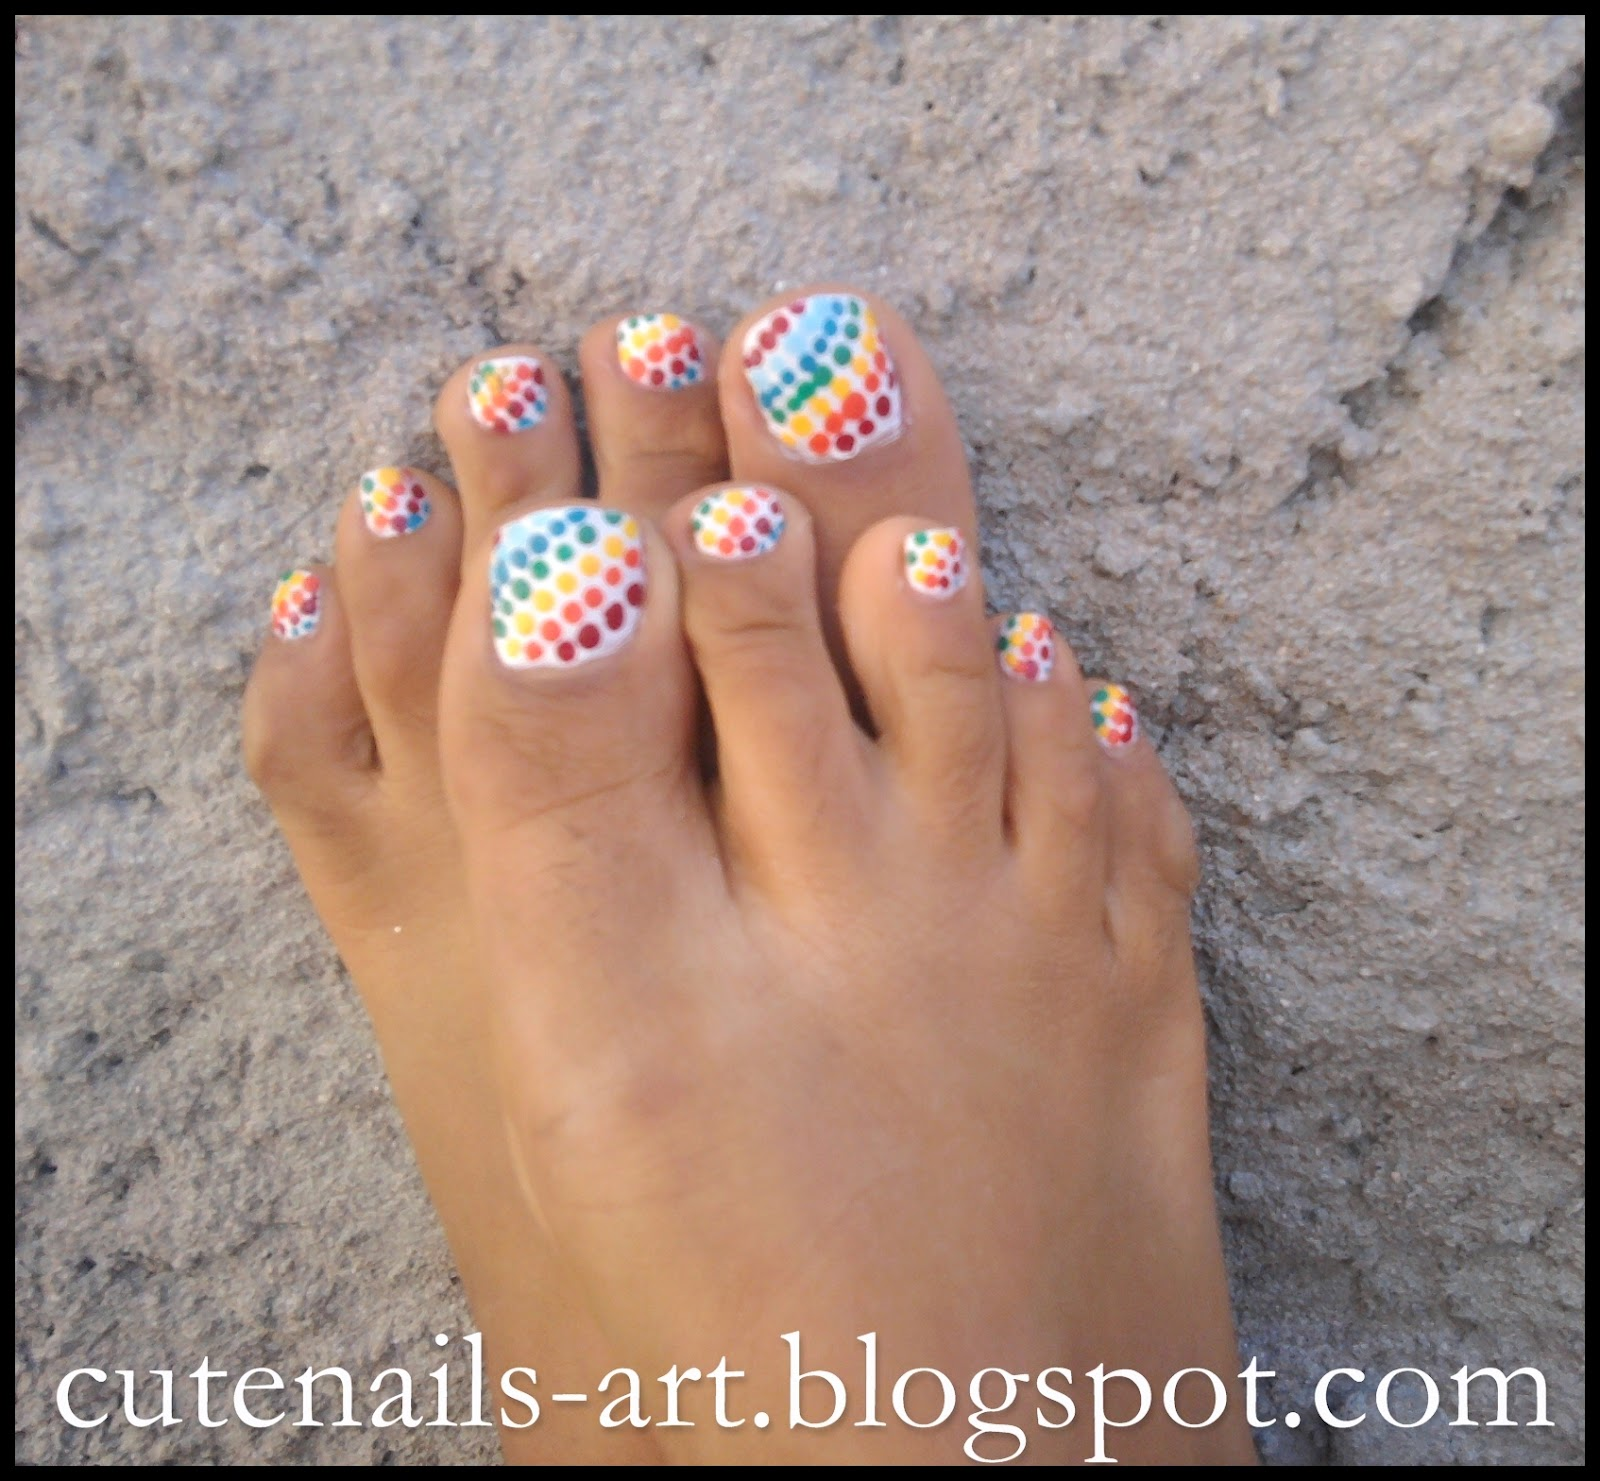 cutenails-art: 4 summer pedicures,easy & fun designs